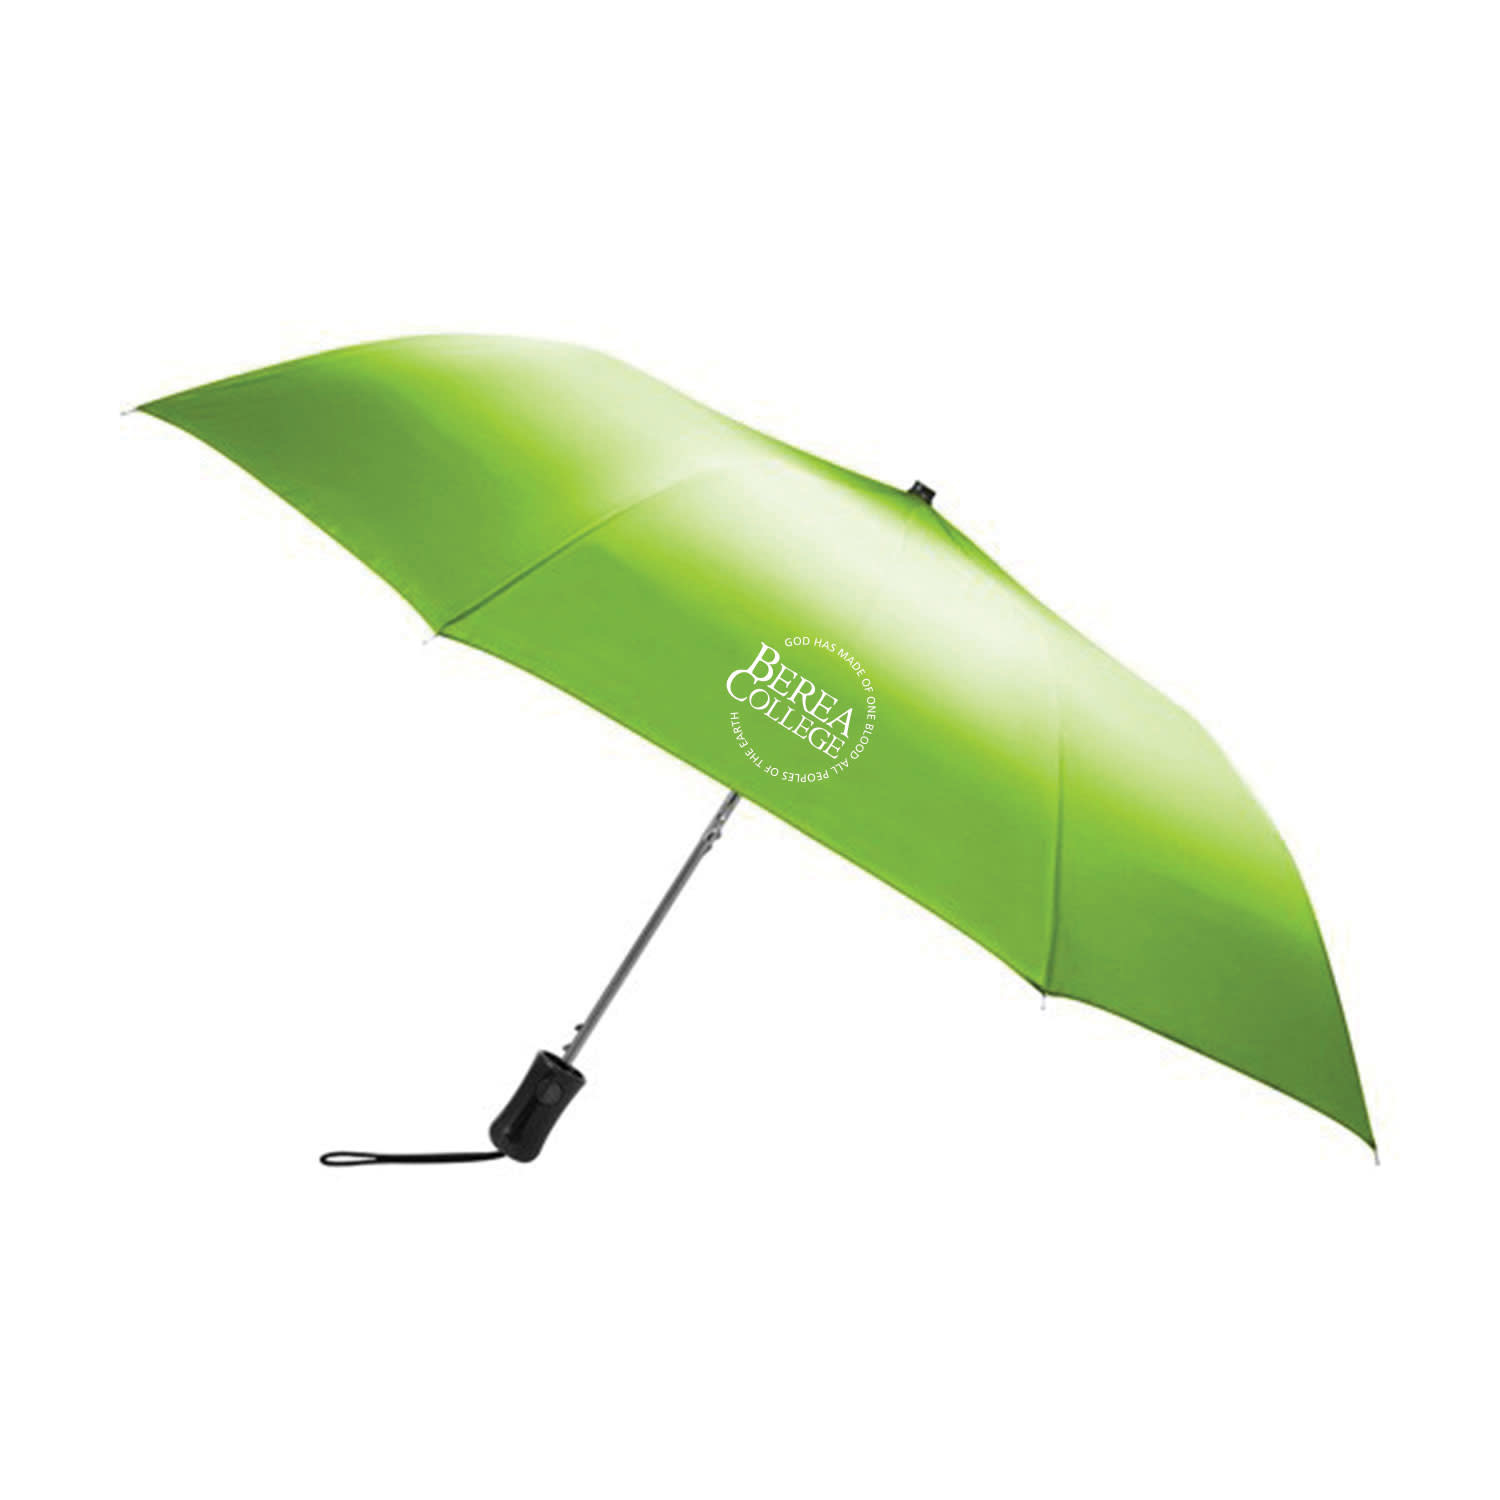 Berea College Umbrella-2